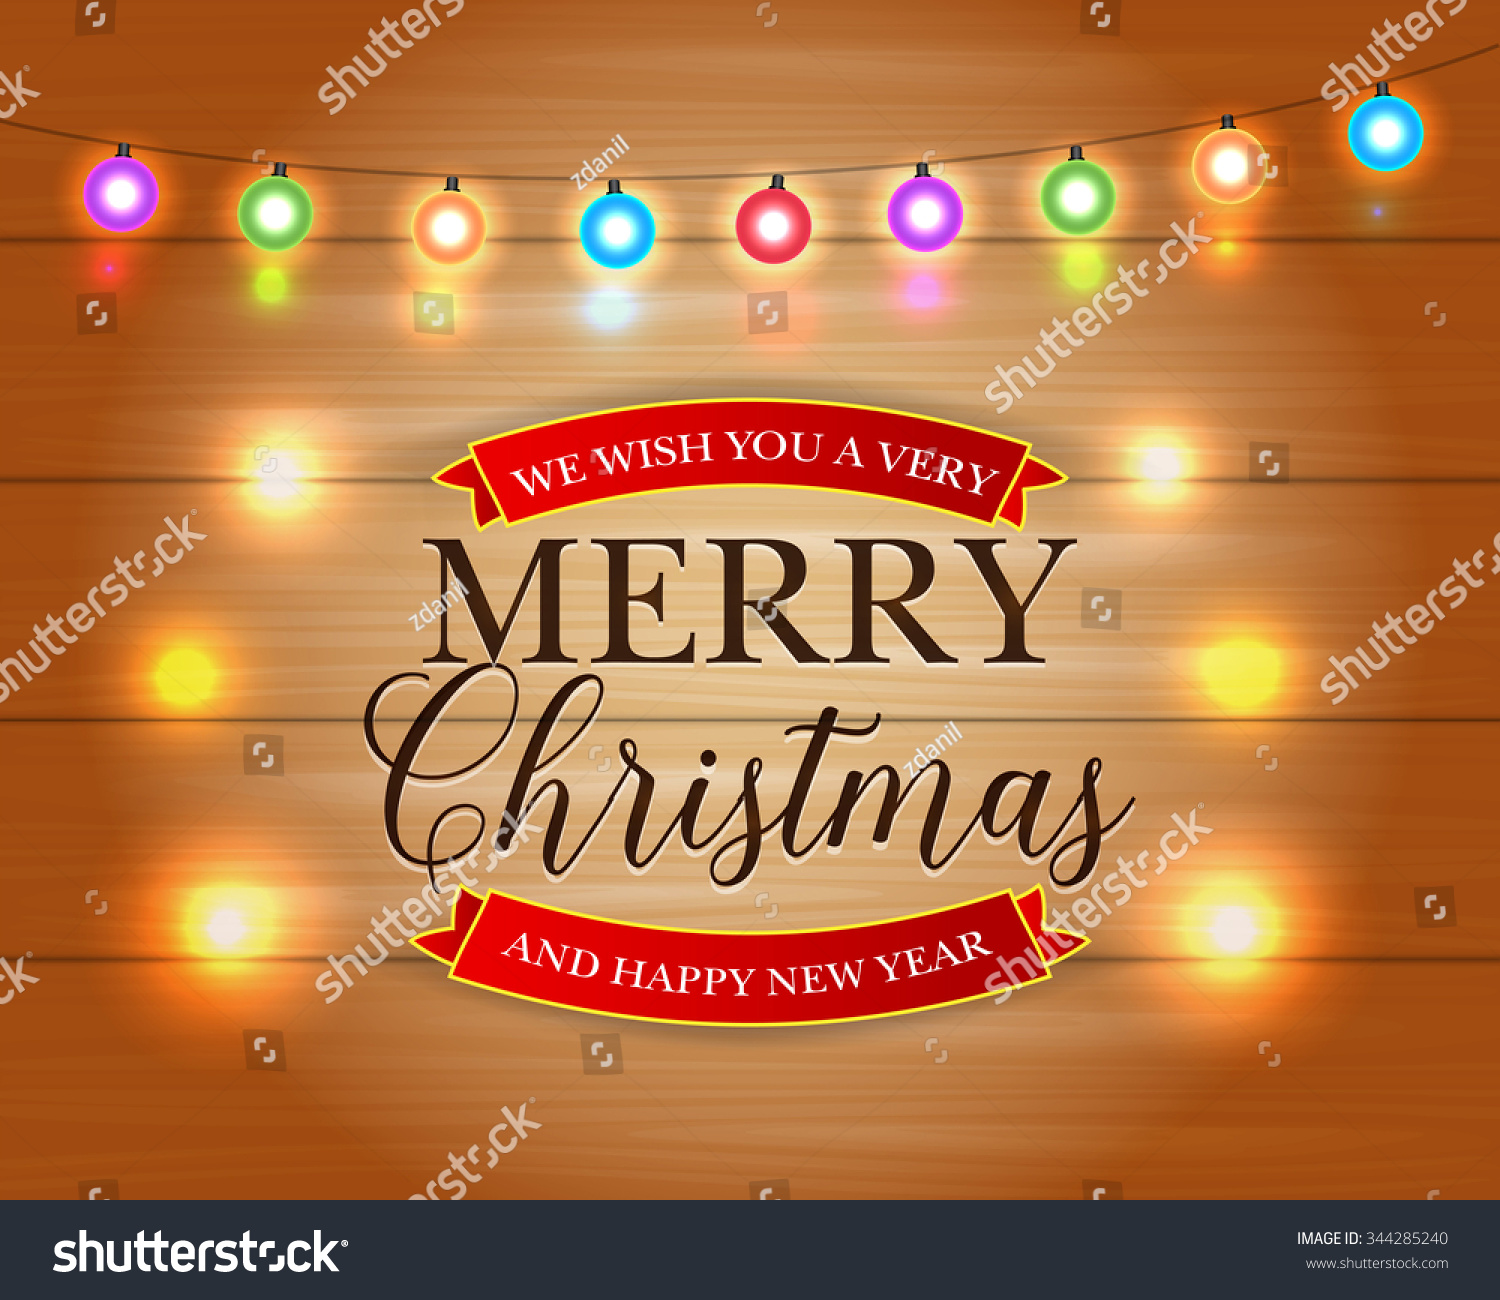 Merry christmas happy new year card stock vector royalty free merry christmas and happy new year card with christmas lights xmas holiday greeting cards design m4hsunfo